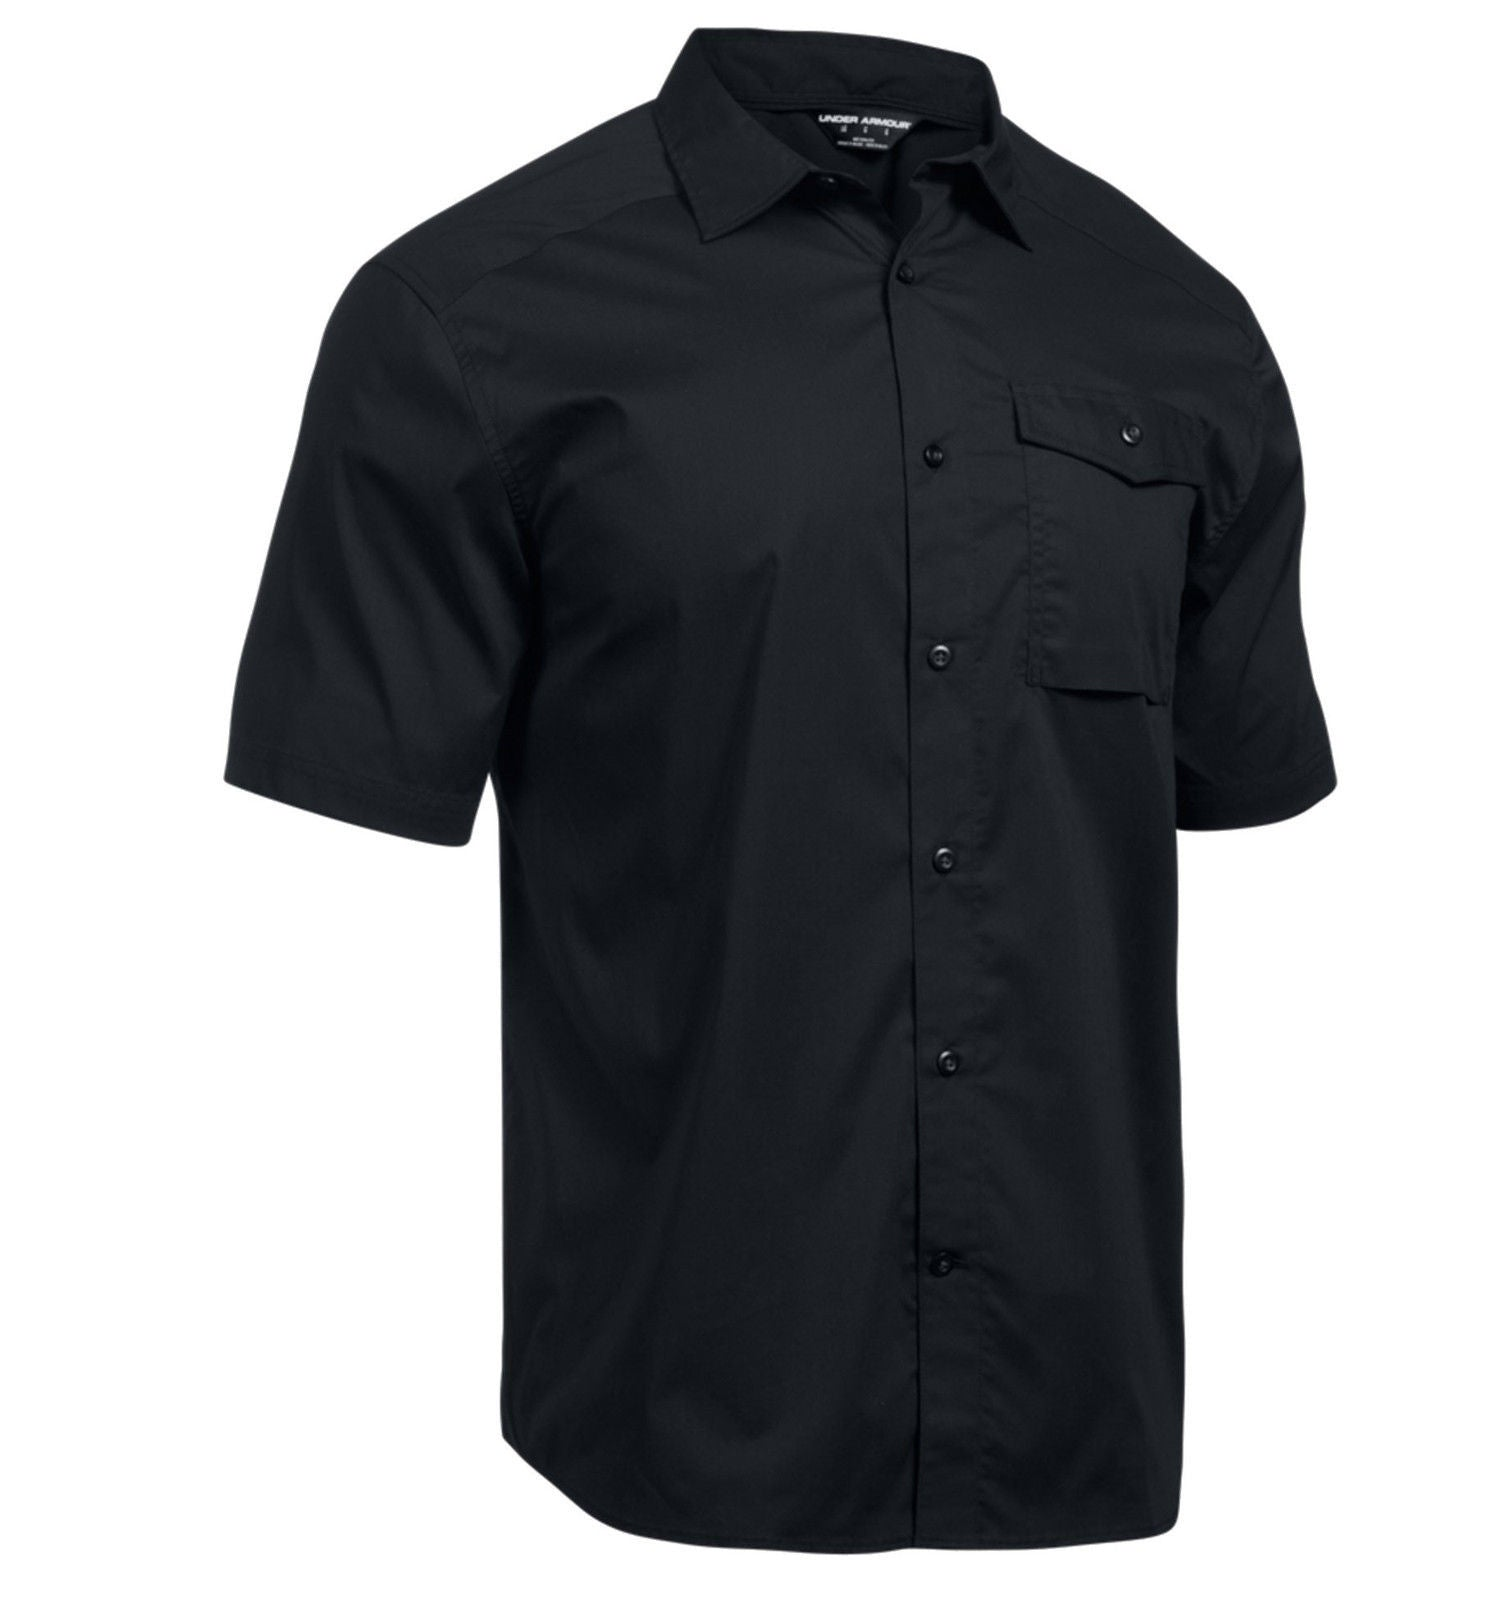 31aa6313 Under Armour Men's Tactical Button-Down Short Sleeve Shirt - Full ...